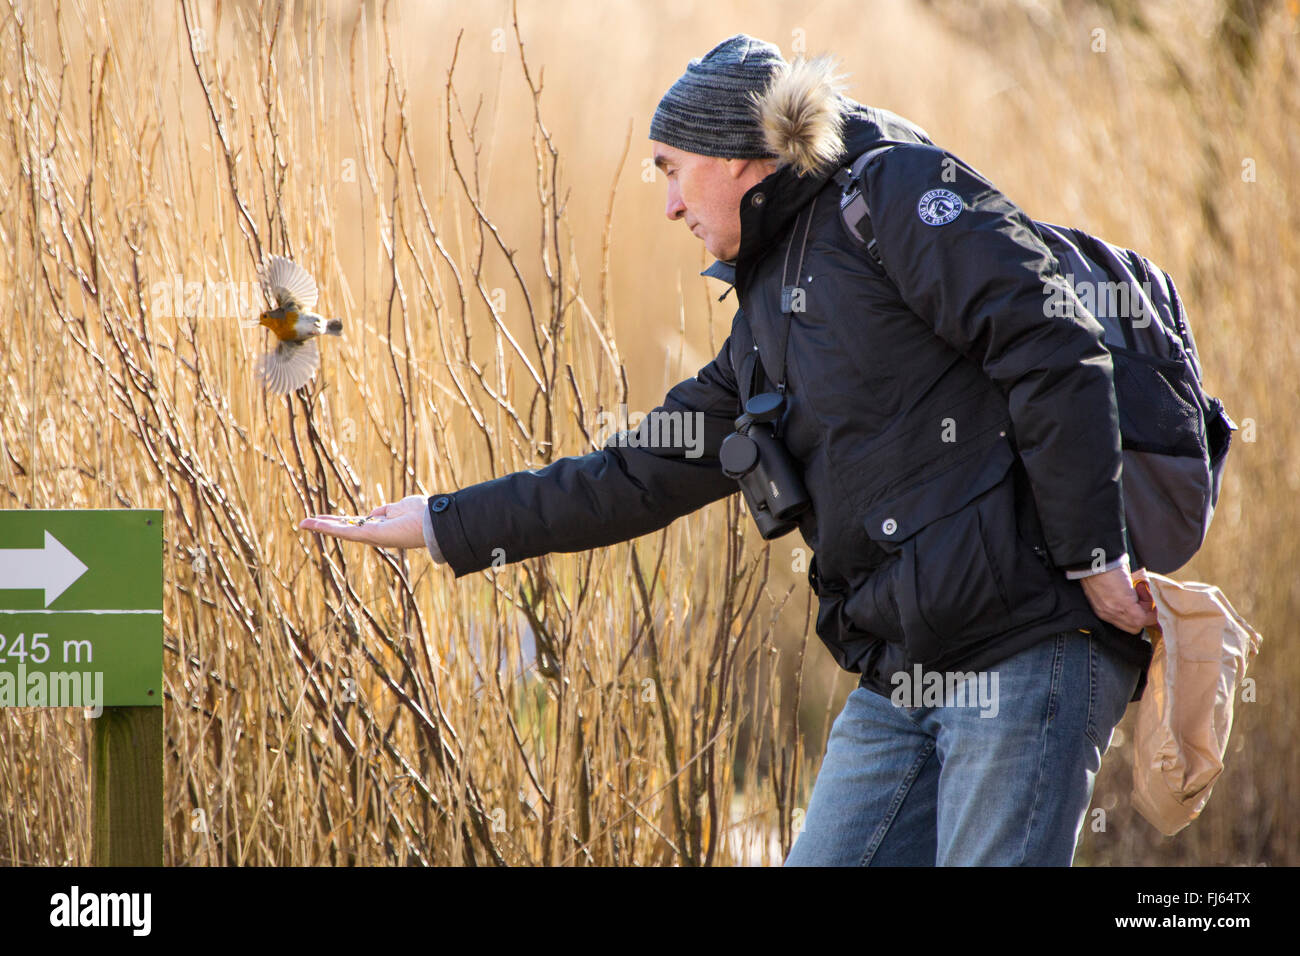 A man feeding a tame Robin out of his hand at RSPB Leighton Moss bird reserve, Silverdale, Lancshire, UK. - Stock Image